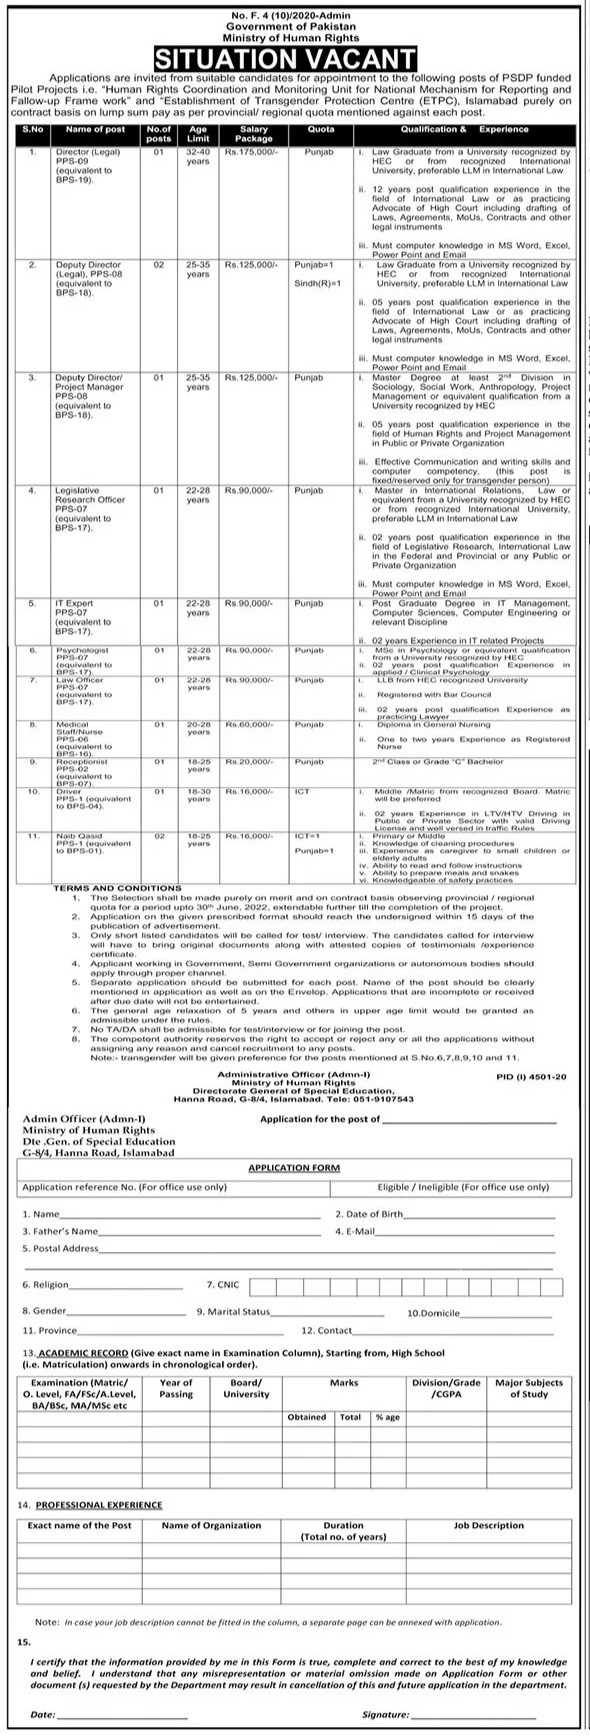 Latest Ministry of Human Rights Establishment of Transgender Protection Centre ETPC Jobs 2021 For Research Officer, IT Expert, Psychologist, Law Officer & more